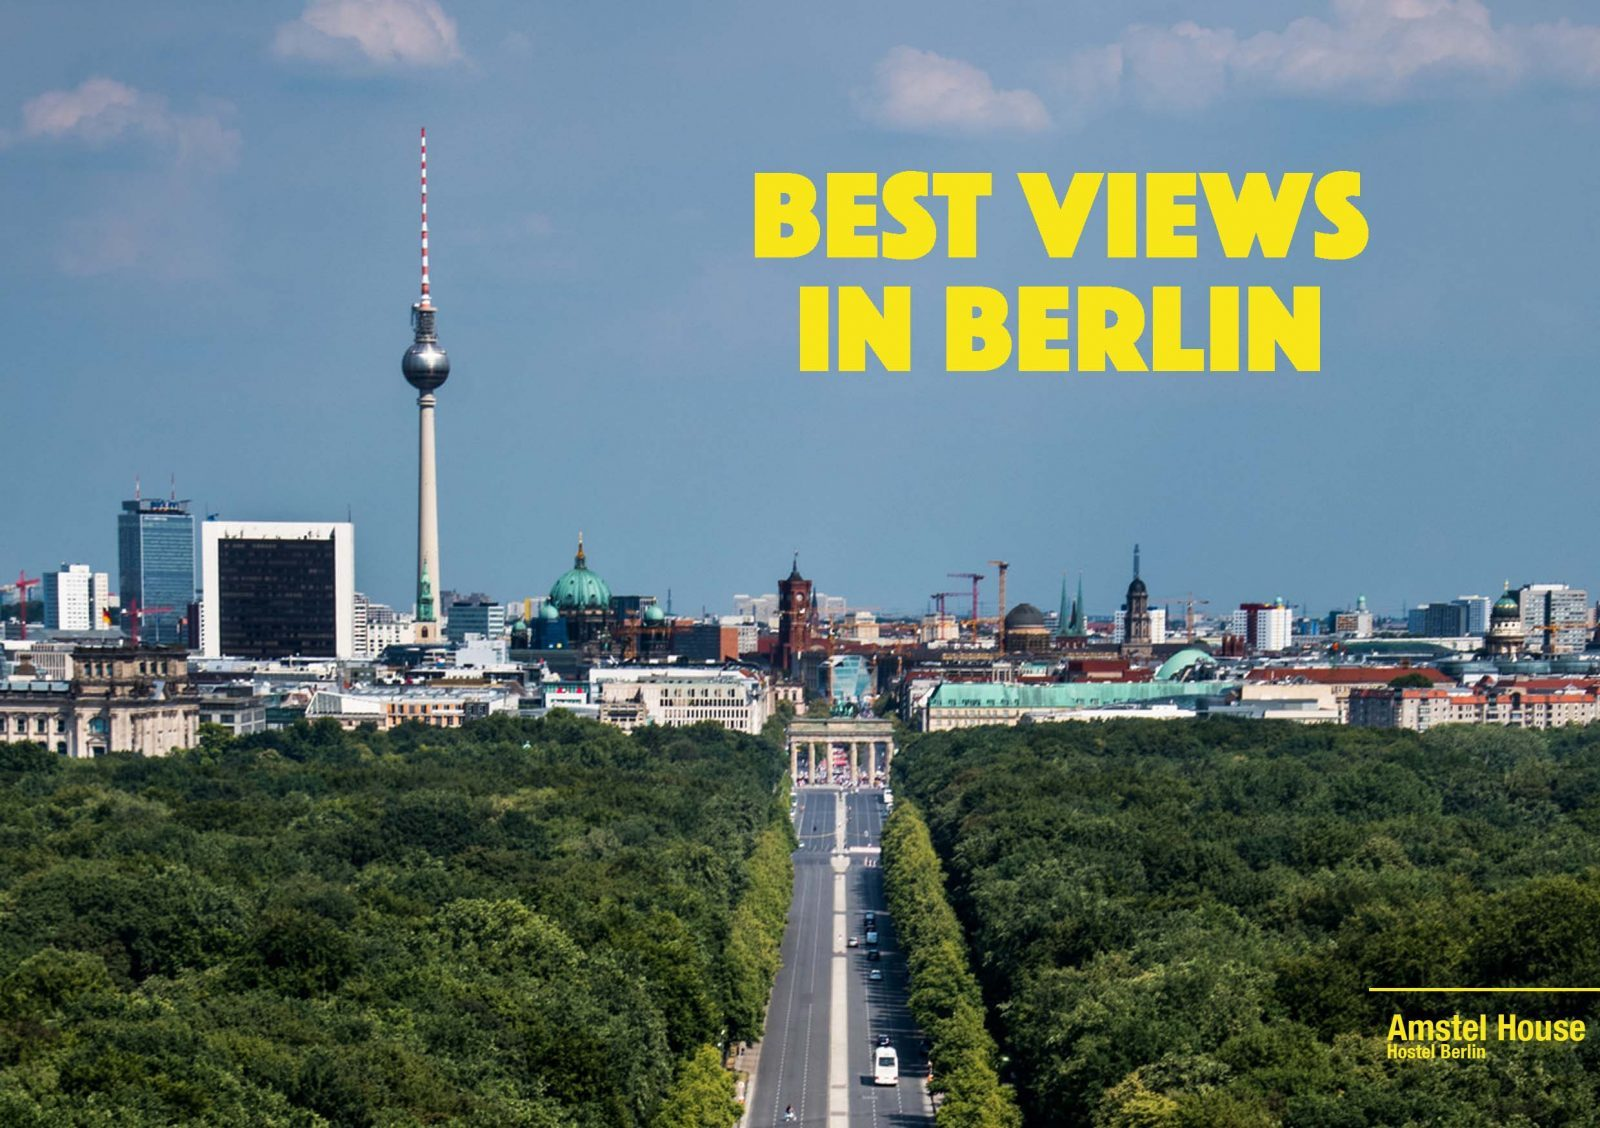 BERLIN BEST VIEWS INSTAGRAM